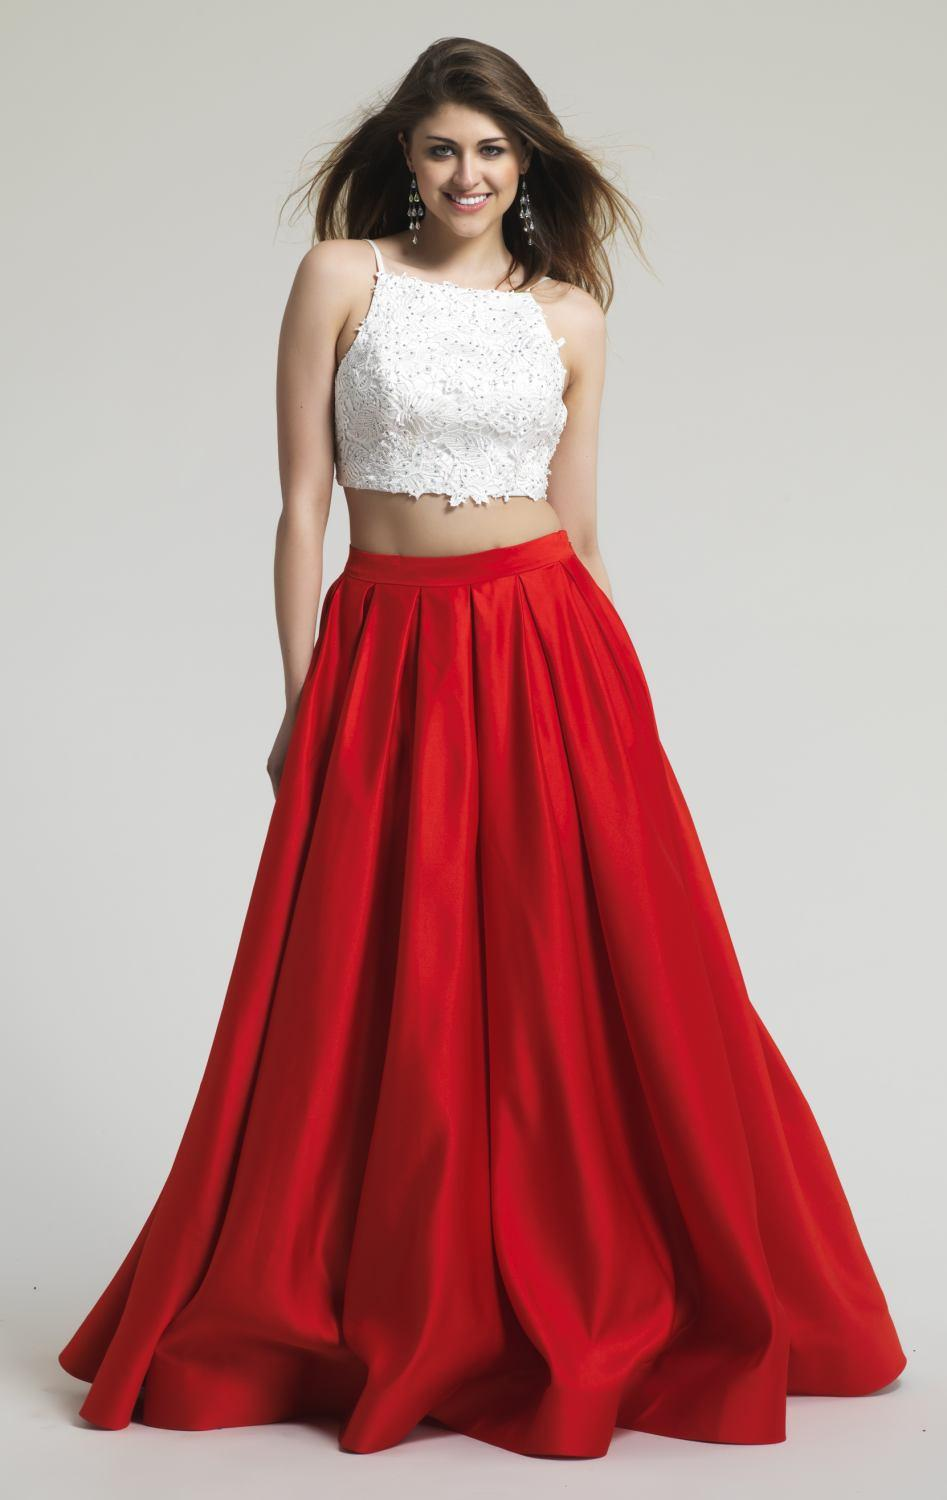 Size Two Pieces Prom Dresses 2016 White Lace Red Satin Beaded